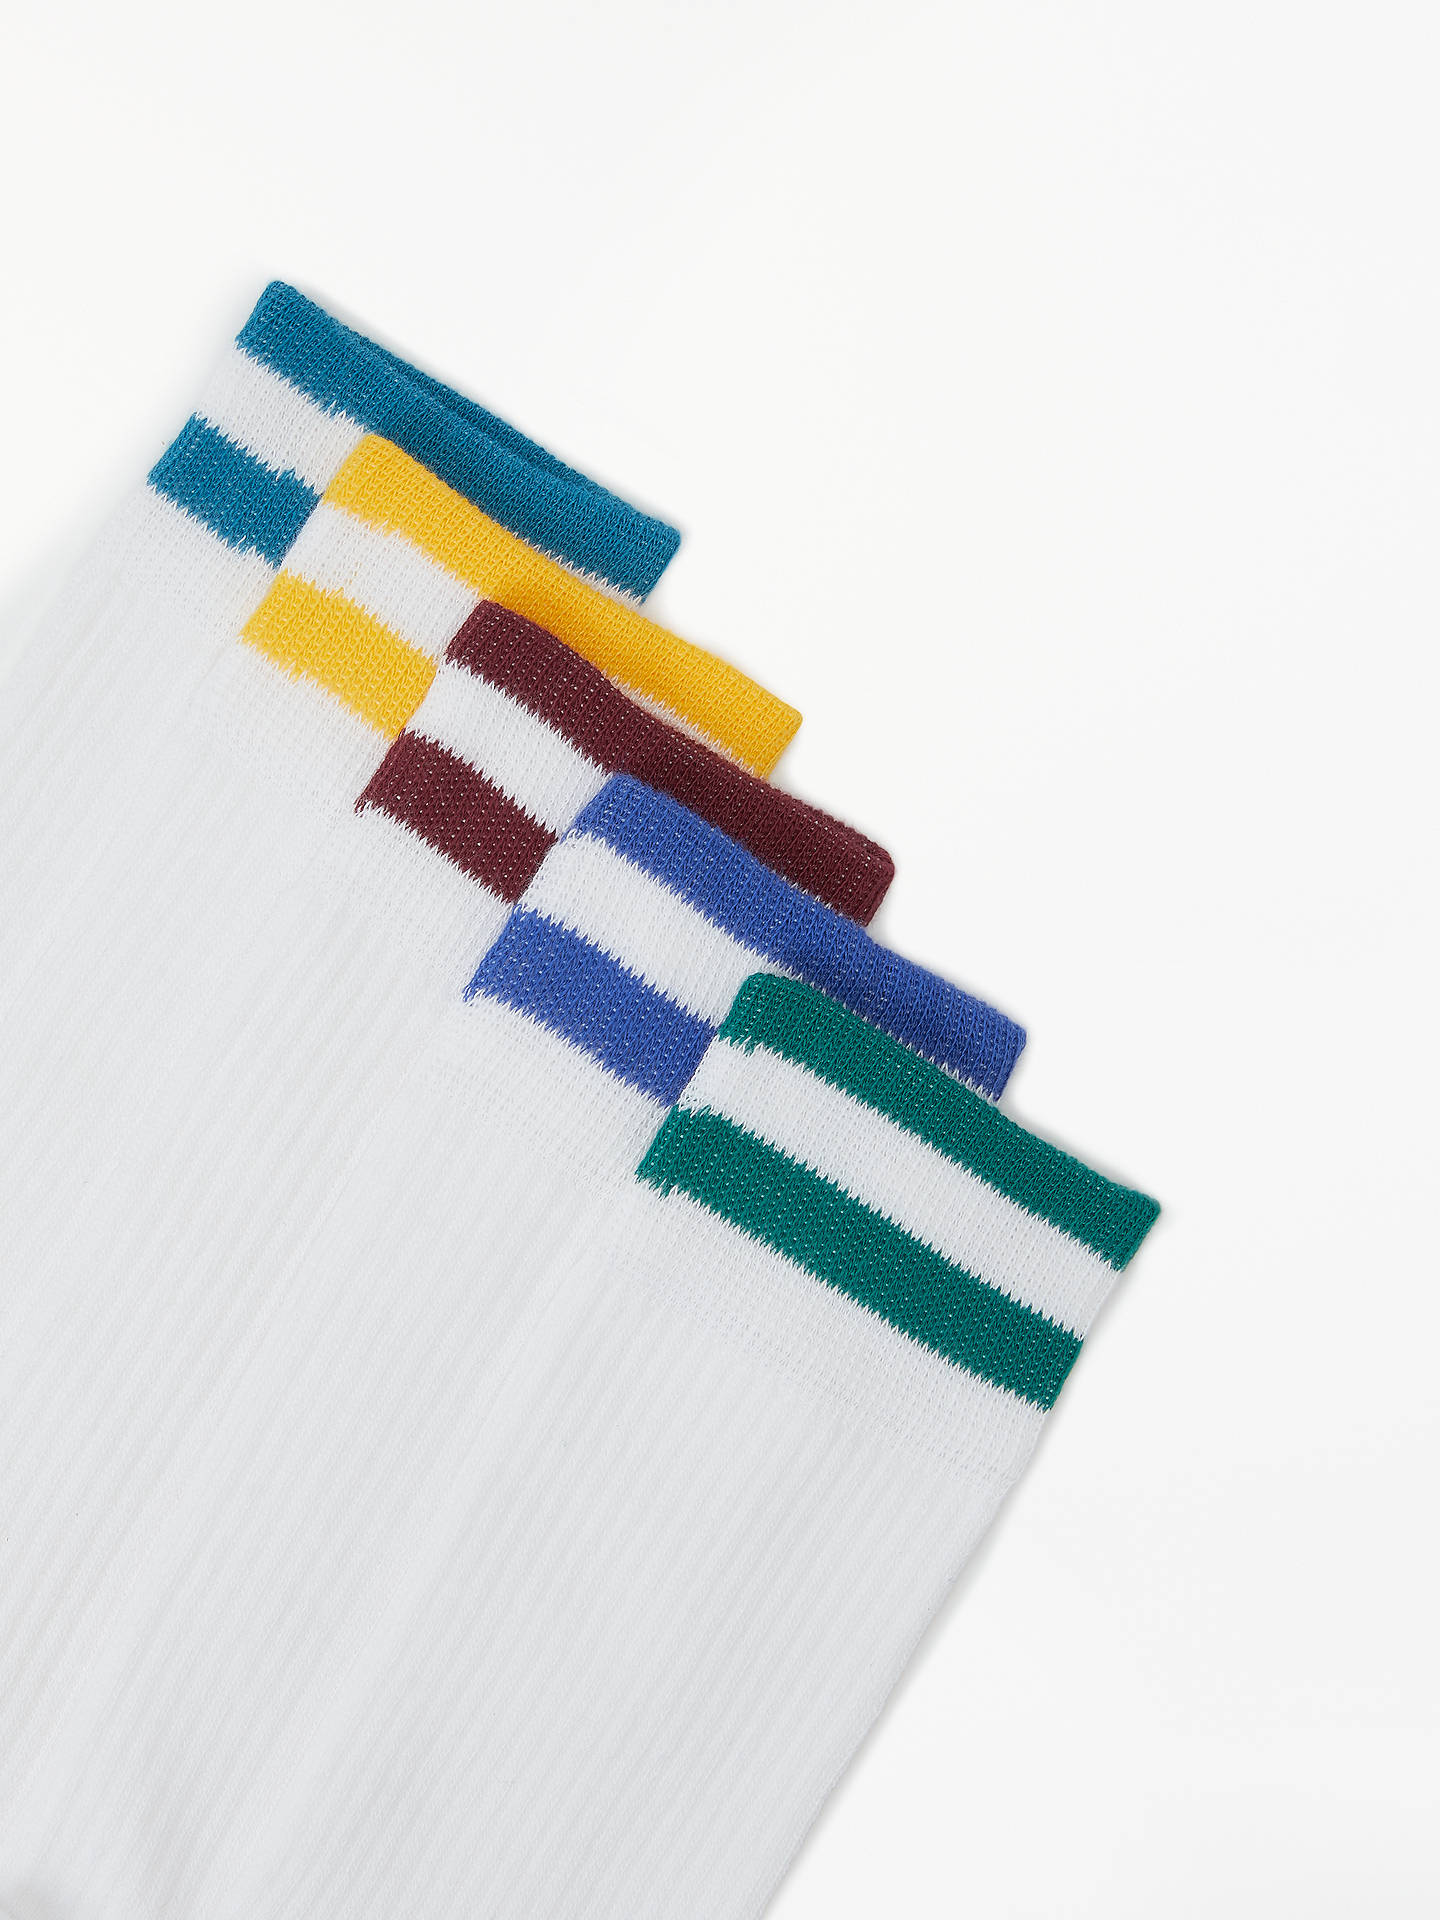 Buy John Lewis & Partners Cushioned Long Socks, Pack of 5, White, S Online at johnlewis.com